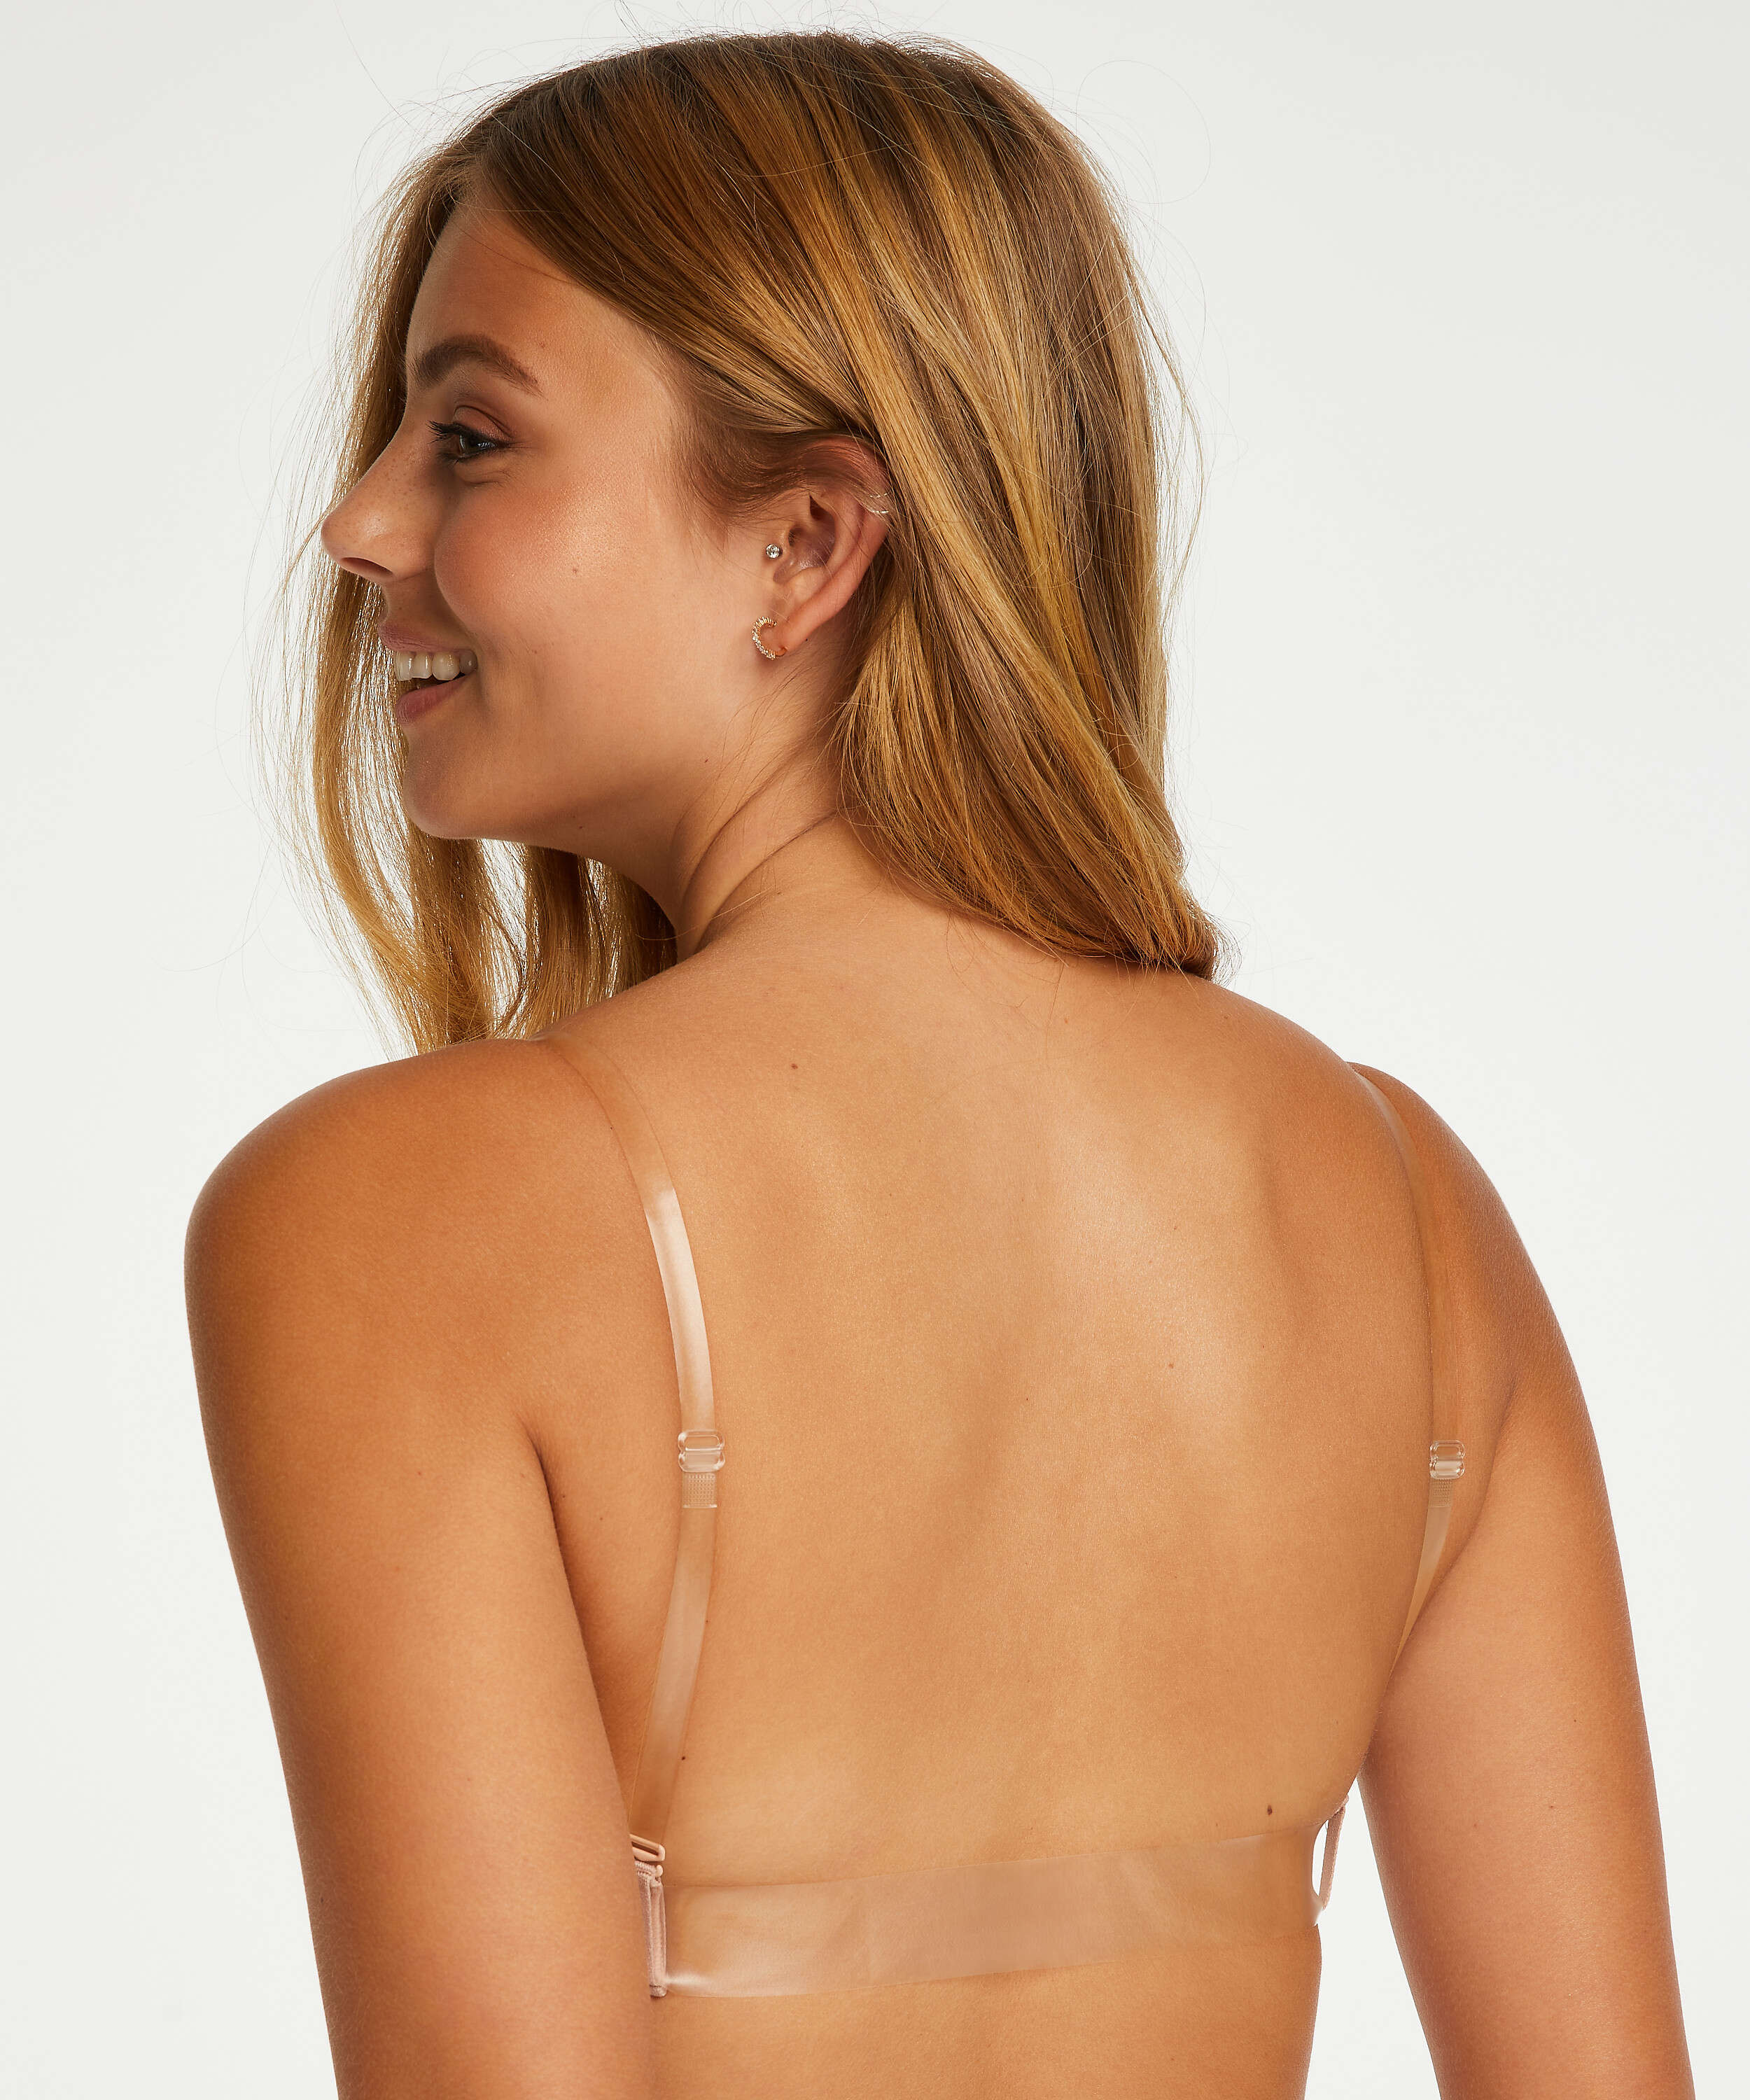 Transparent Back Padded Underwired Push-Up Bra, Beige, main